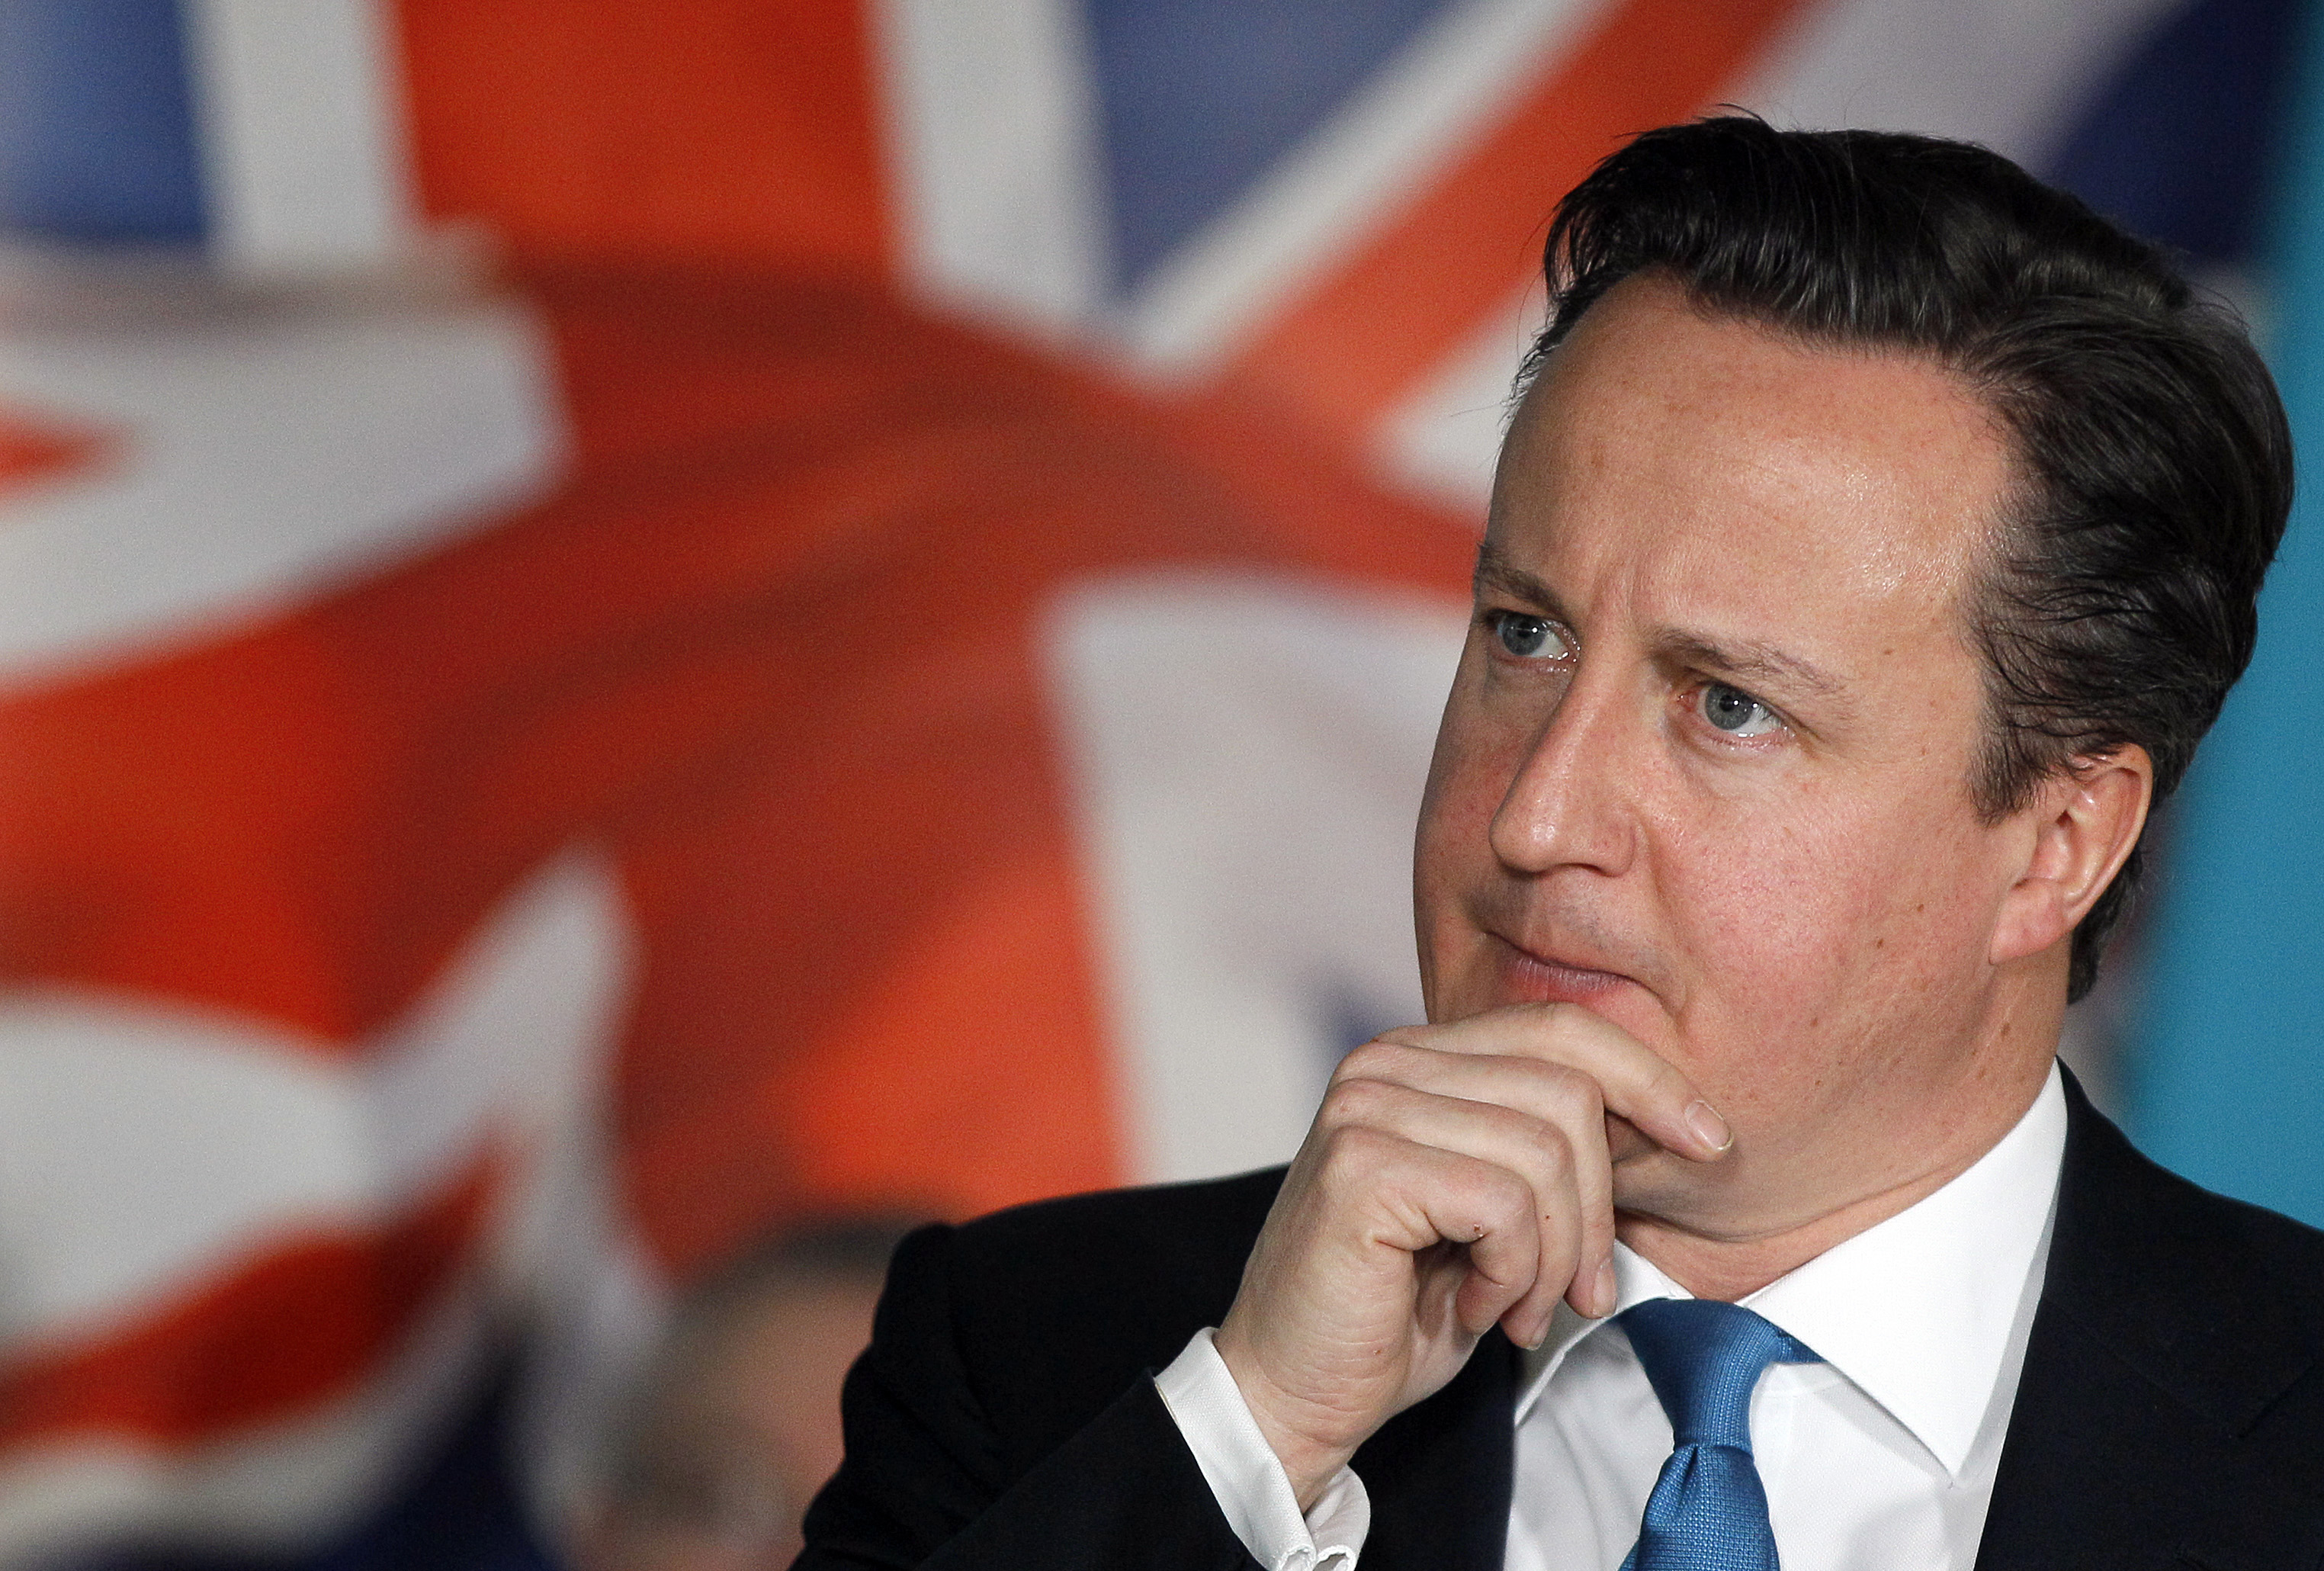 Britain's Prime Minister David Cameron listens to a question during a Prime Minister Direct session during a visit to accountancy software company Intuit, in Maidenhead, England, Thursday, Jan. 5, 2012. (AP Photo/Kirsty Wigglesworth, pool)